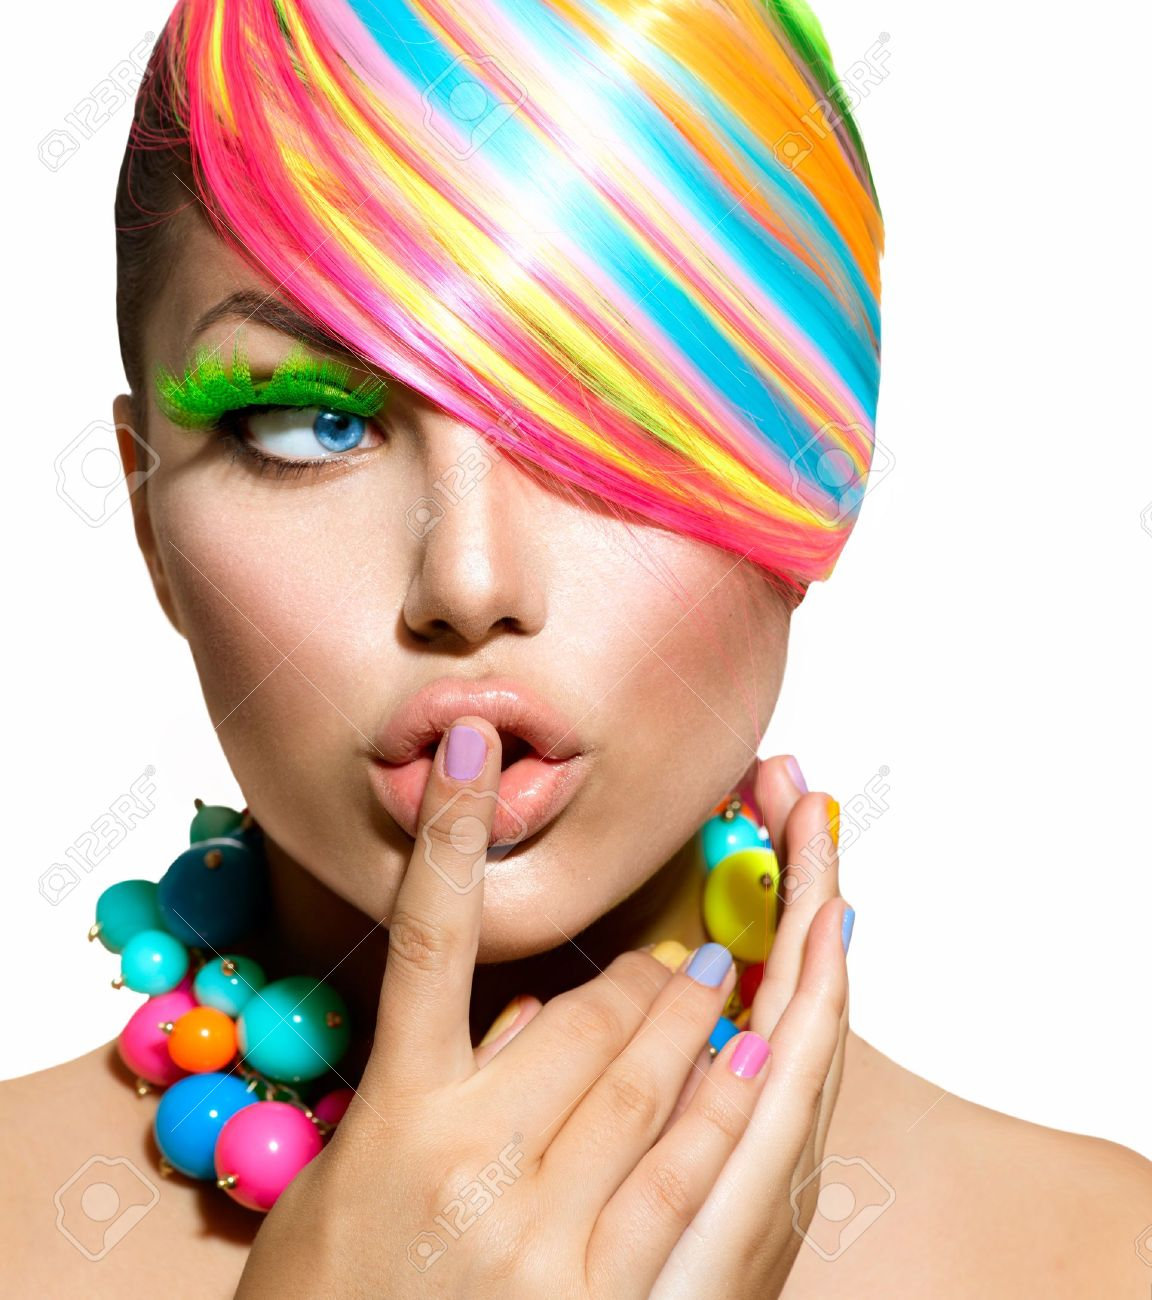 Beauty Girl Portrait with Colorful Makeup, Hair and Accessories - 21065063